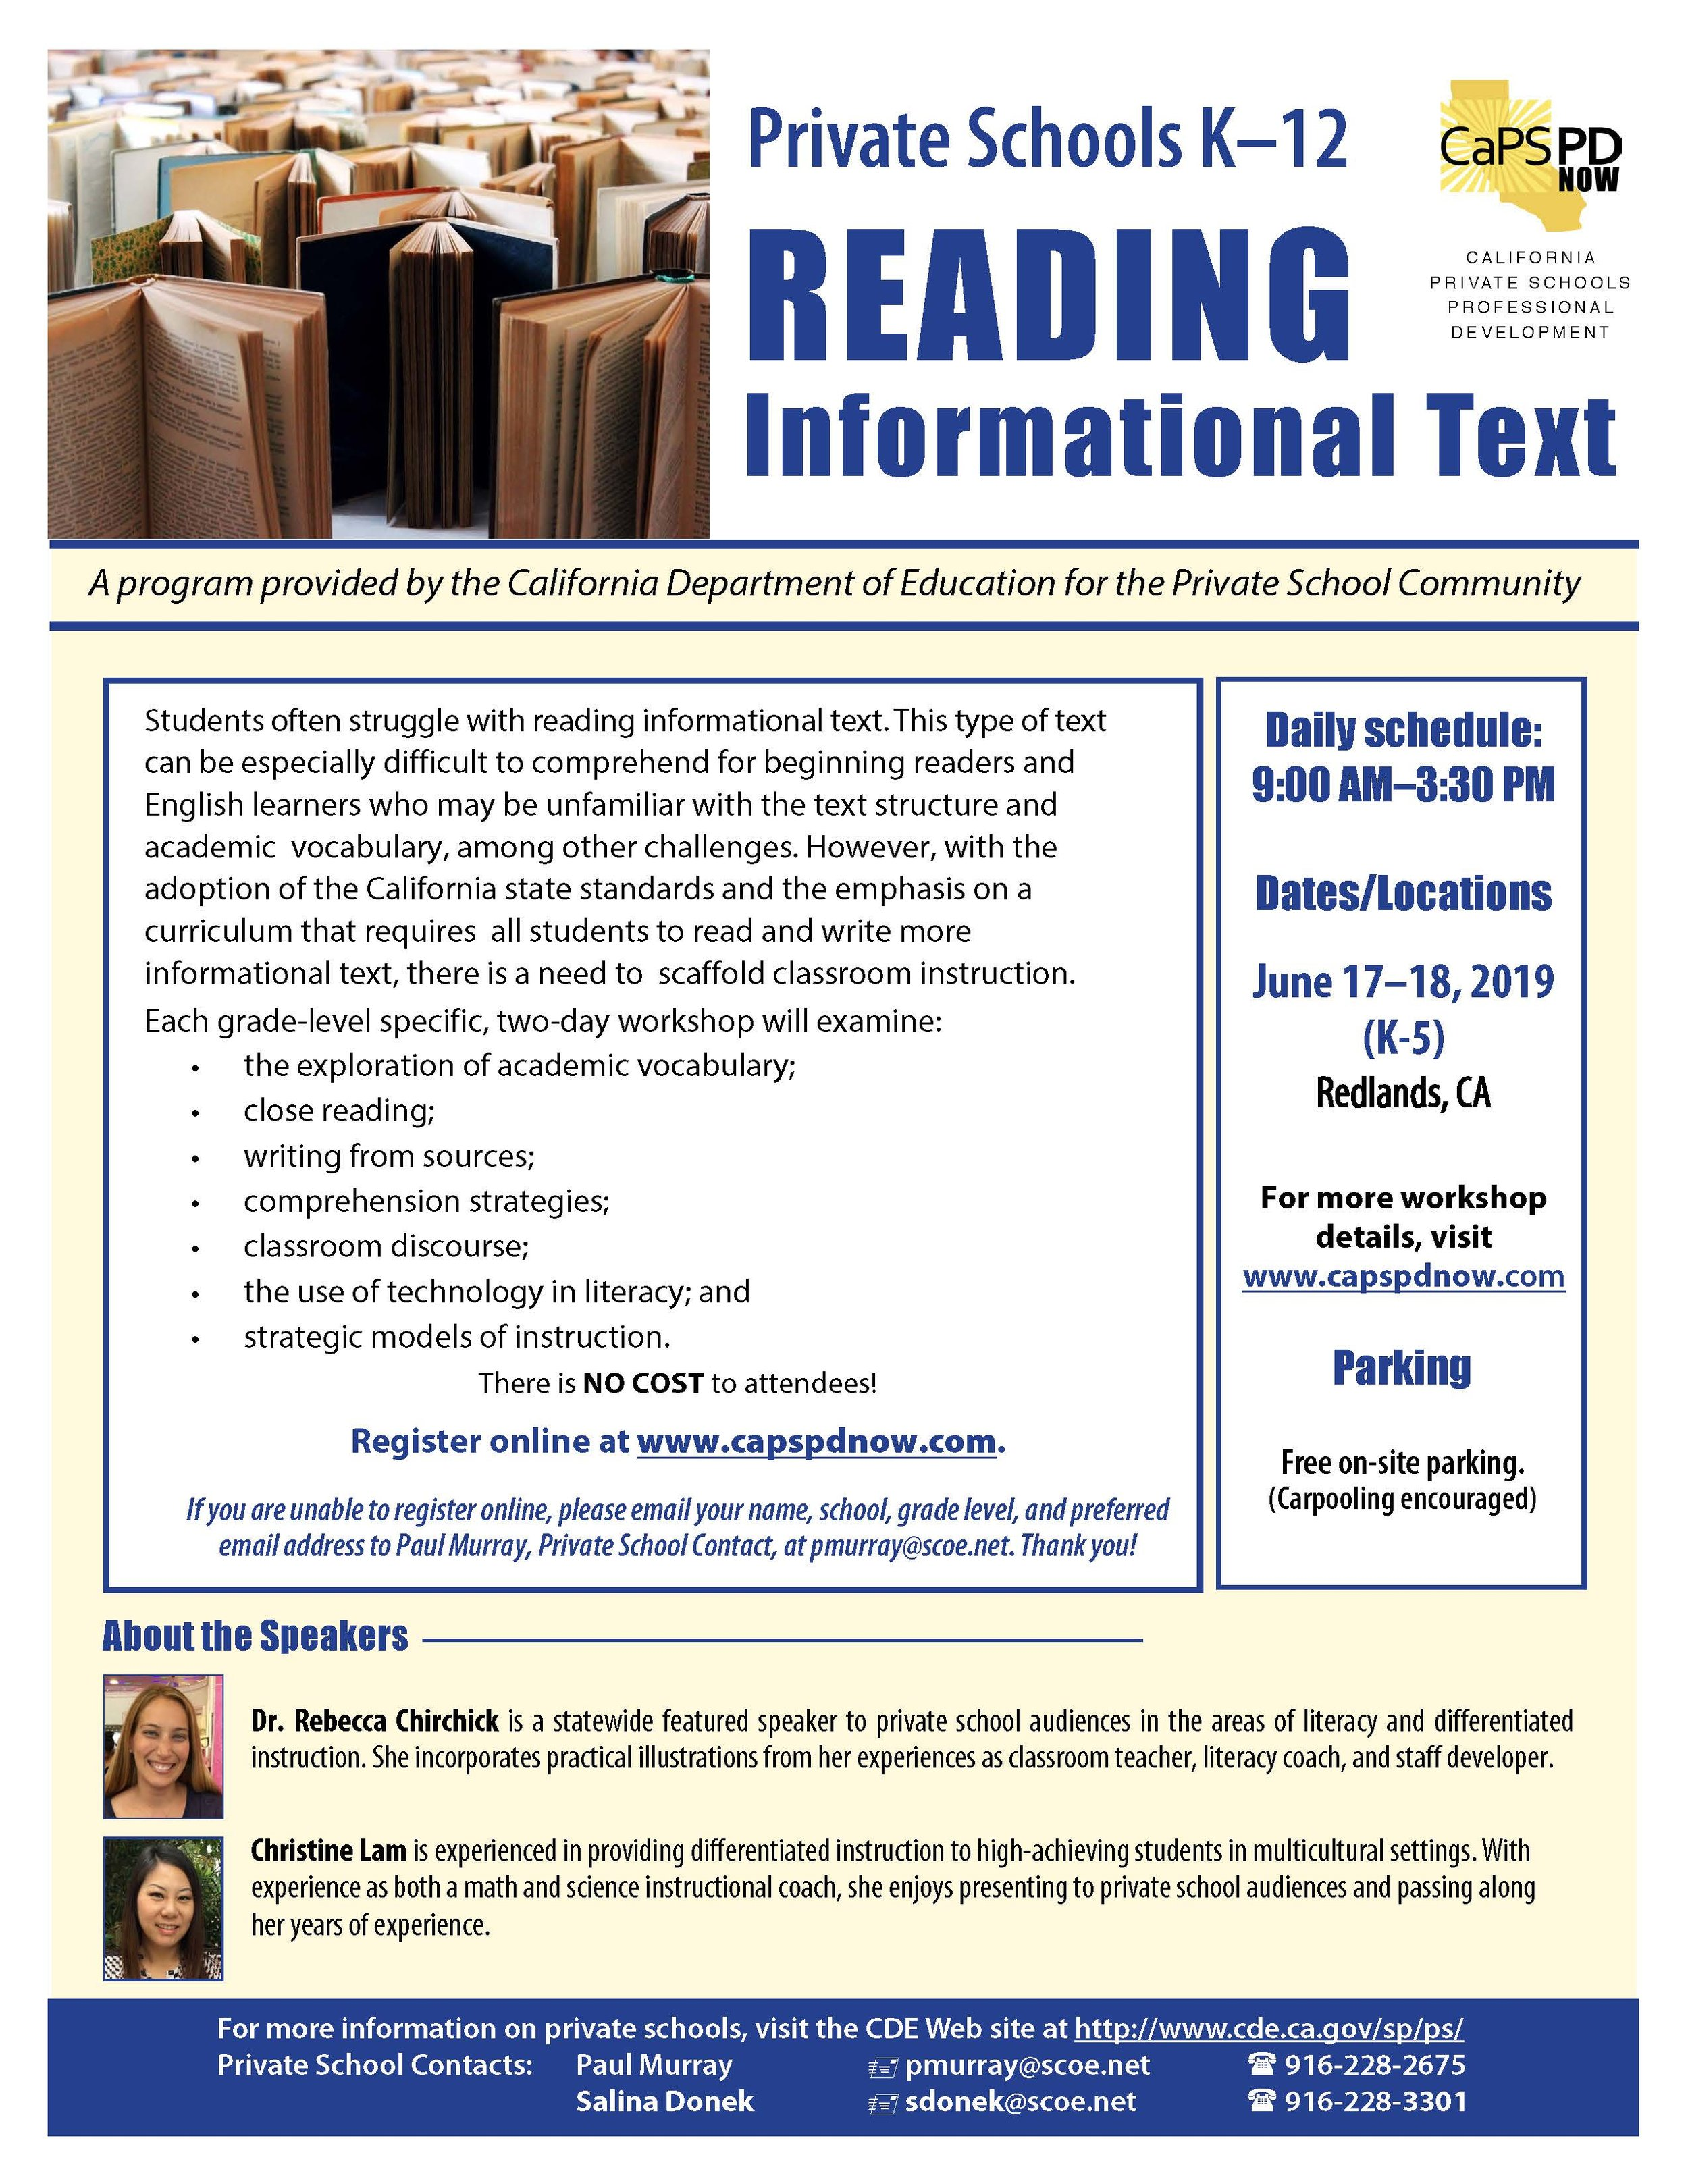 Picture of flyer for the Reading Informational Texts Workshops